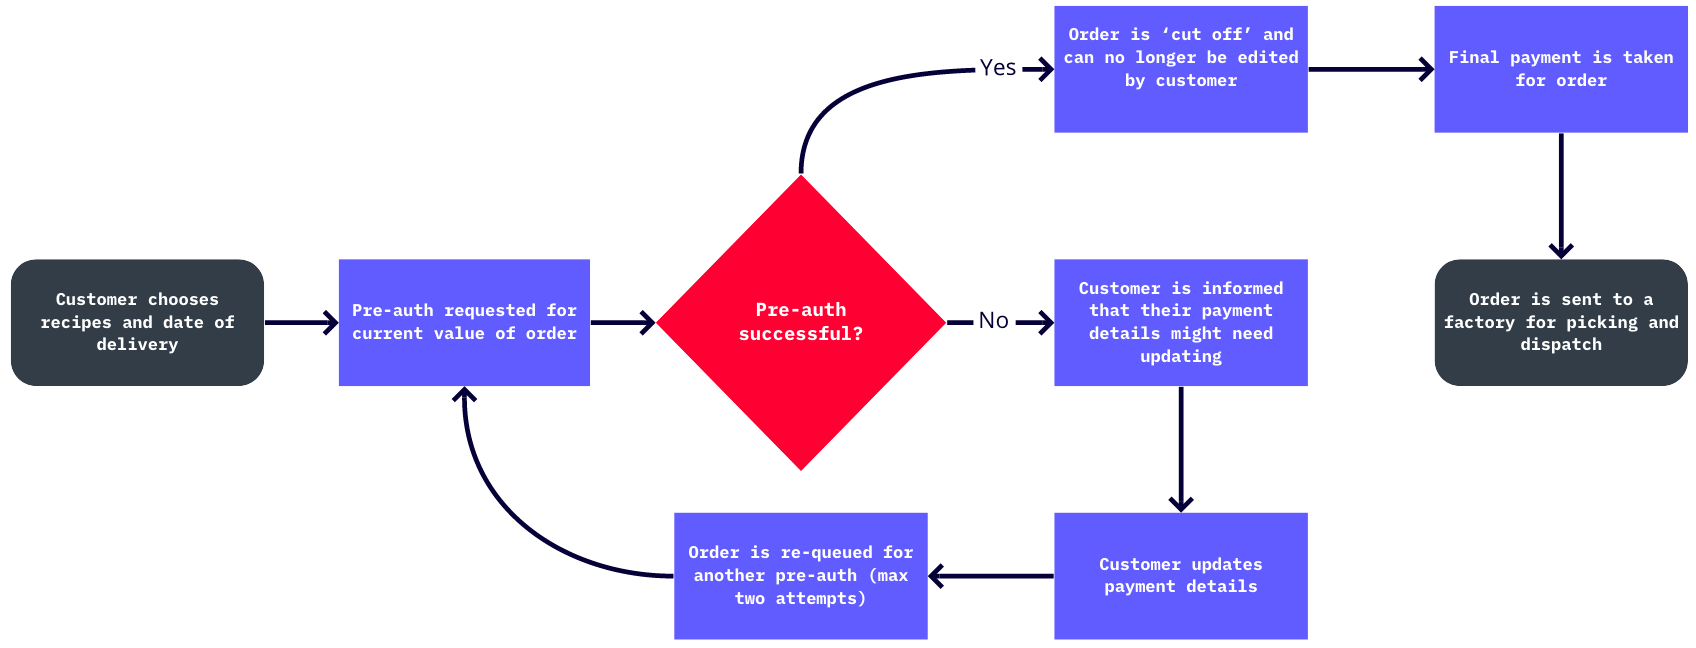 The pre-auth process